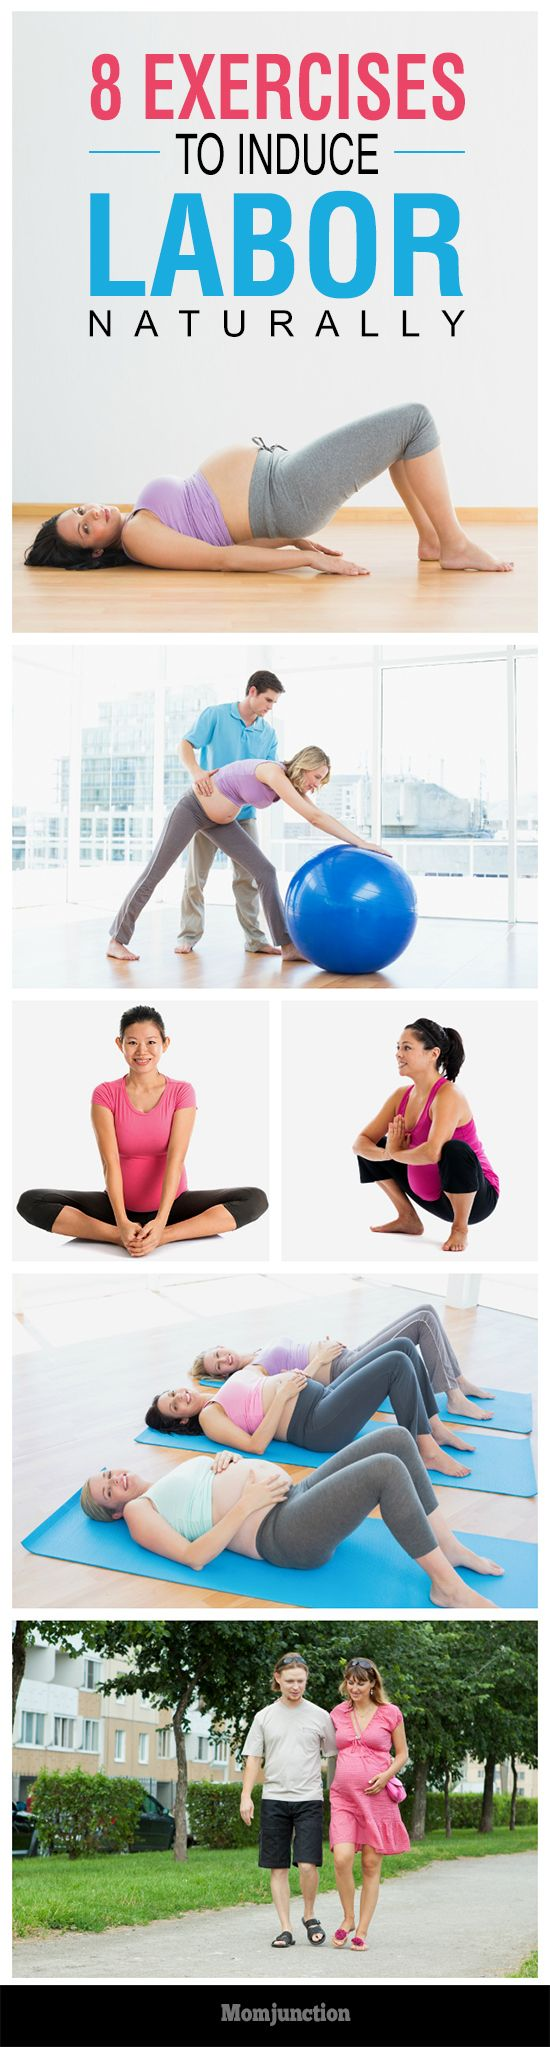 Nine months in? Tired of Waiting? Then start practicing certain exercises to induce labor naturally. Here are 8 effective exercises that help induce labor.